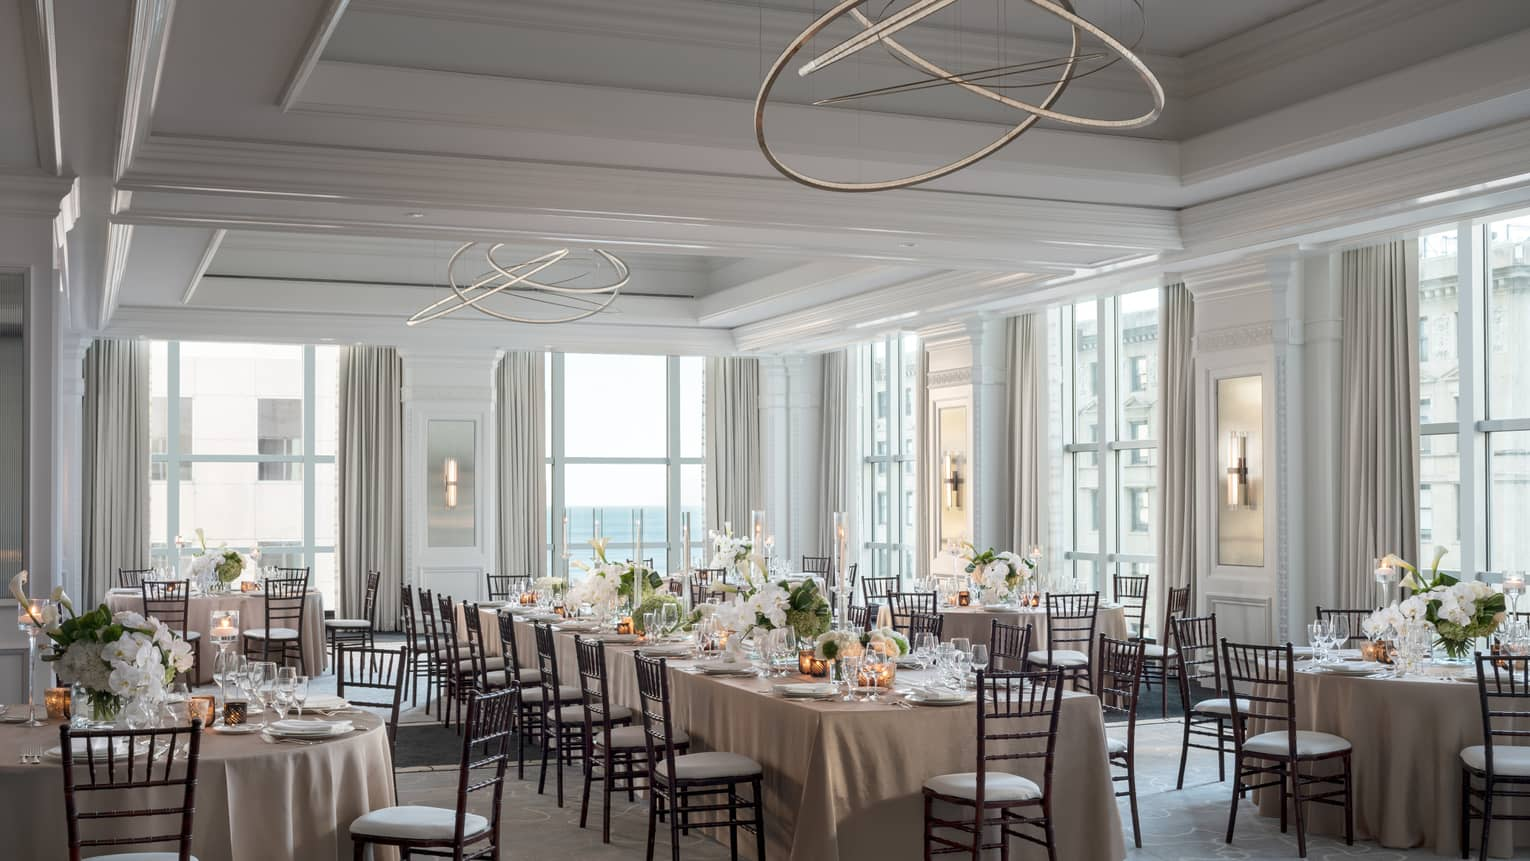 Ballroom with high ceilings and large windows, one long table surrounded by round tables